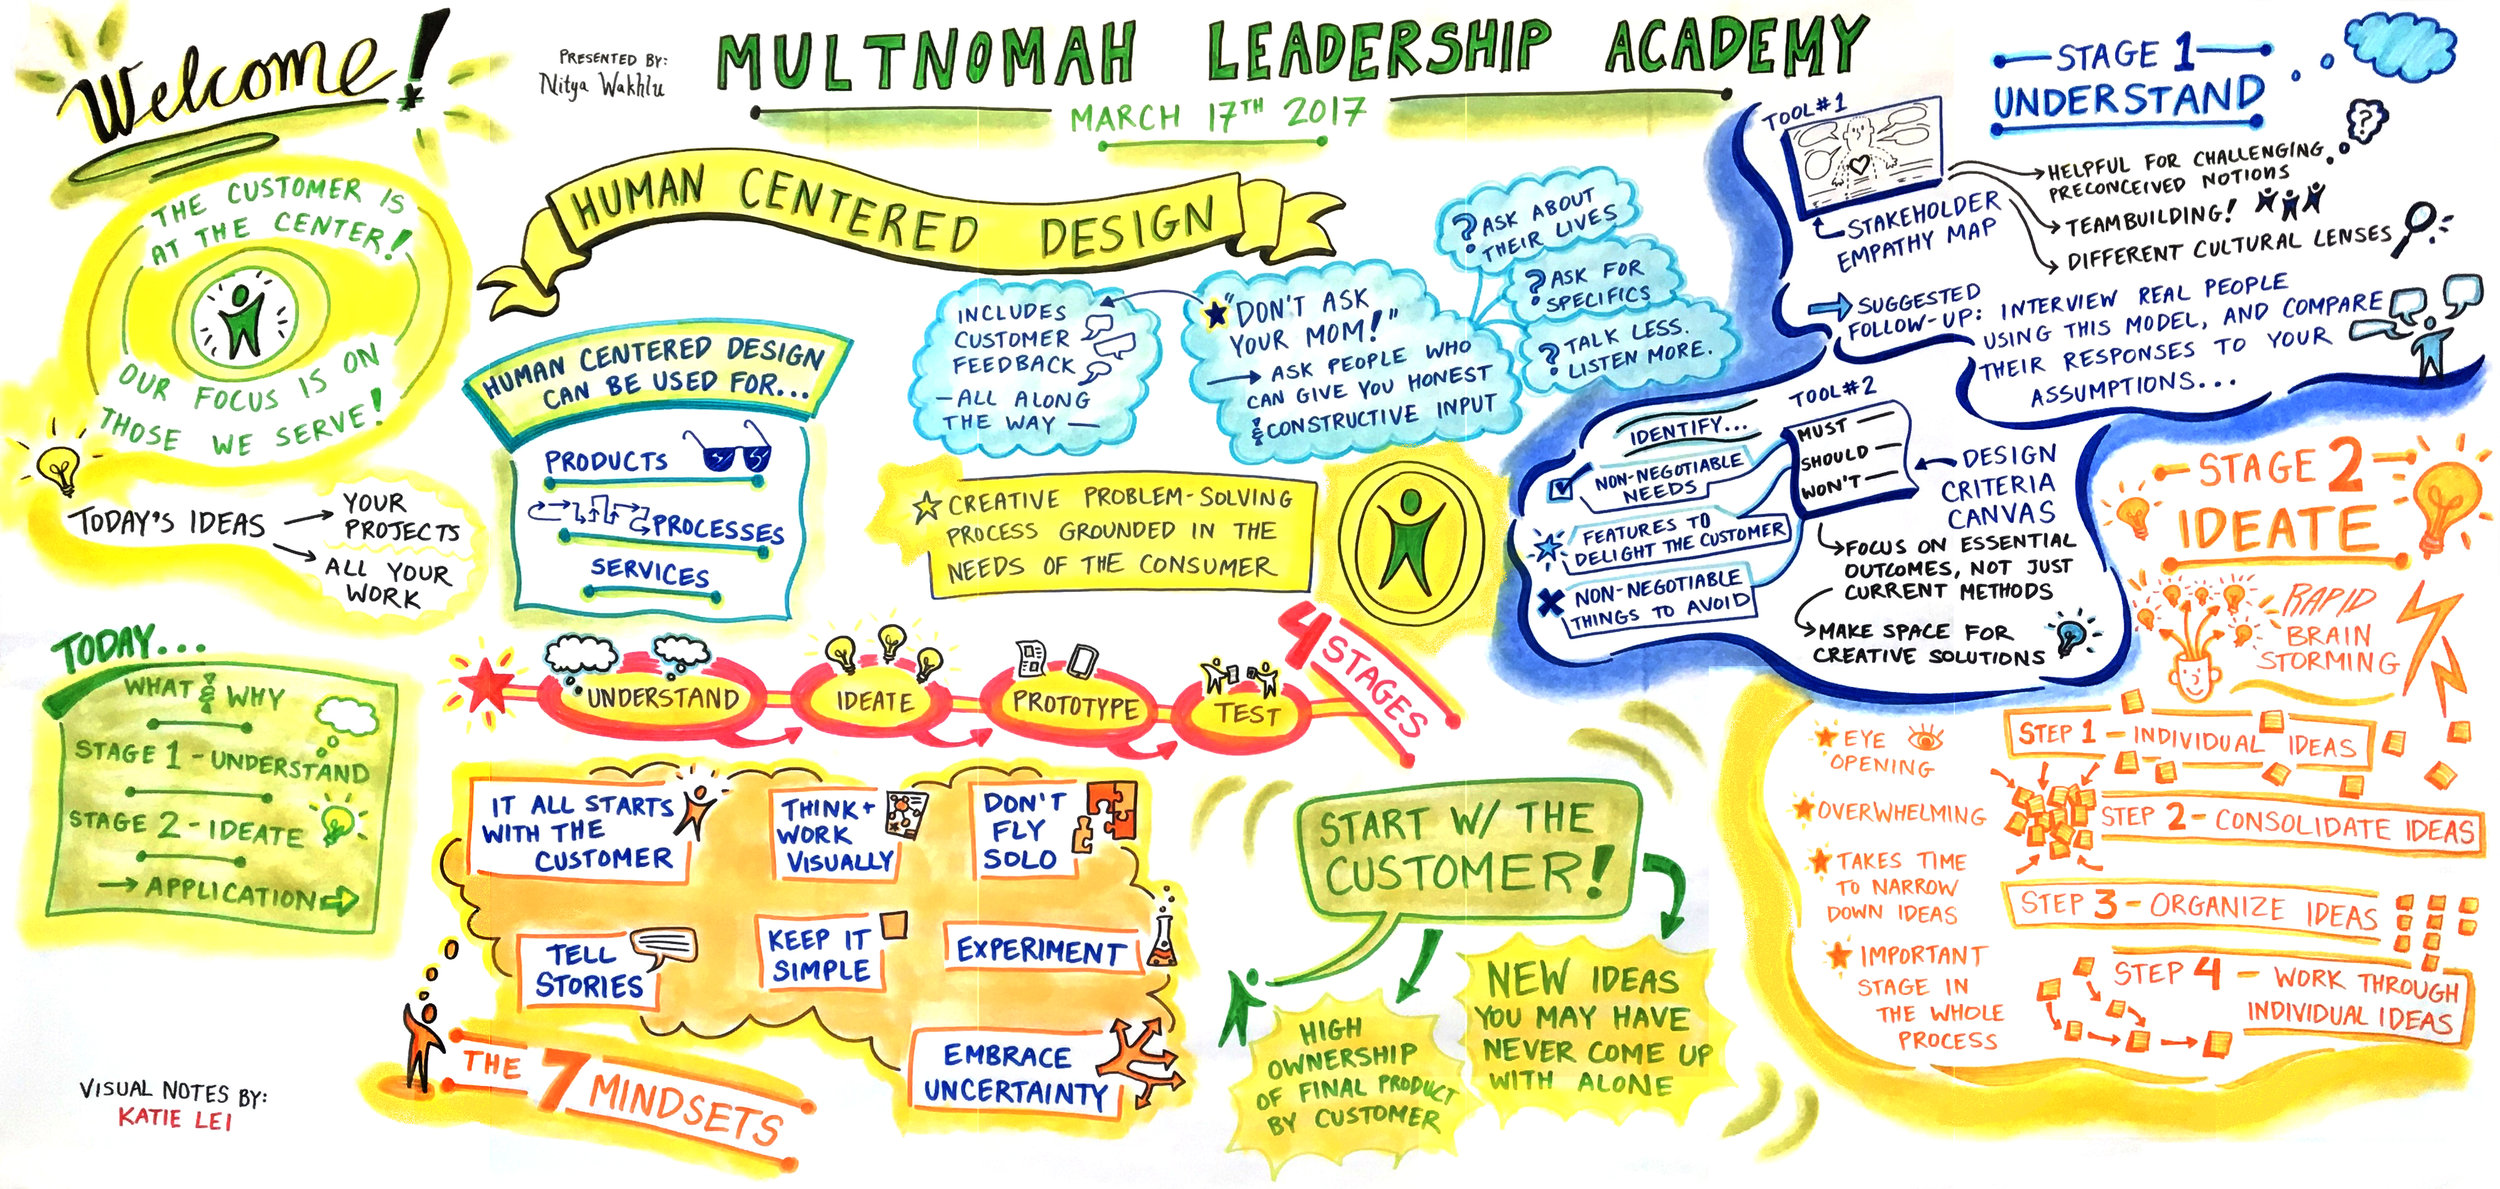 Visual Notes by Katie Lei for Multnomah Leadership Academy